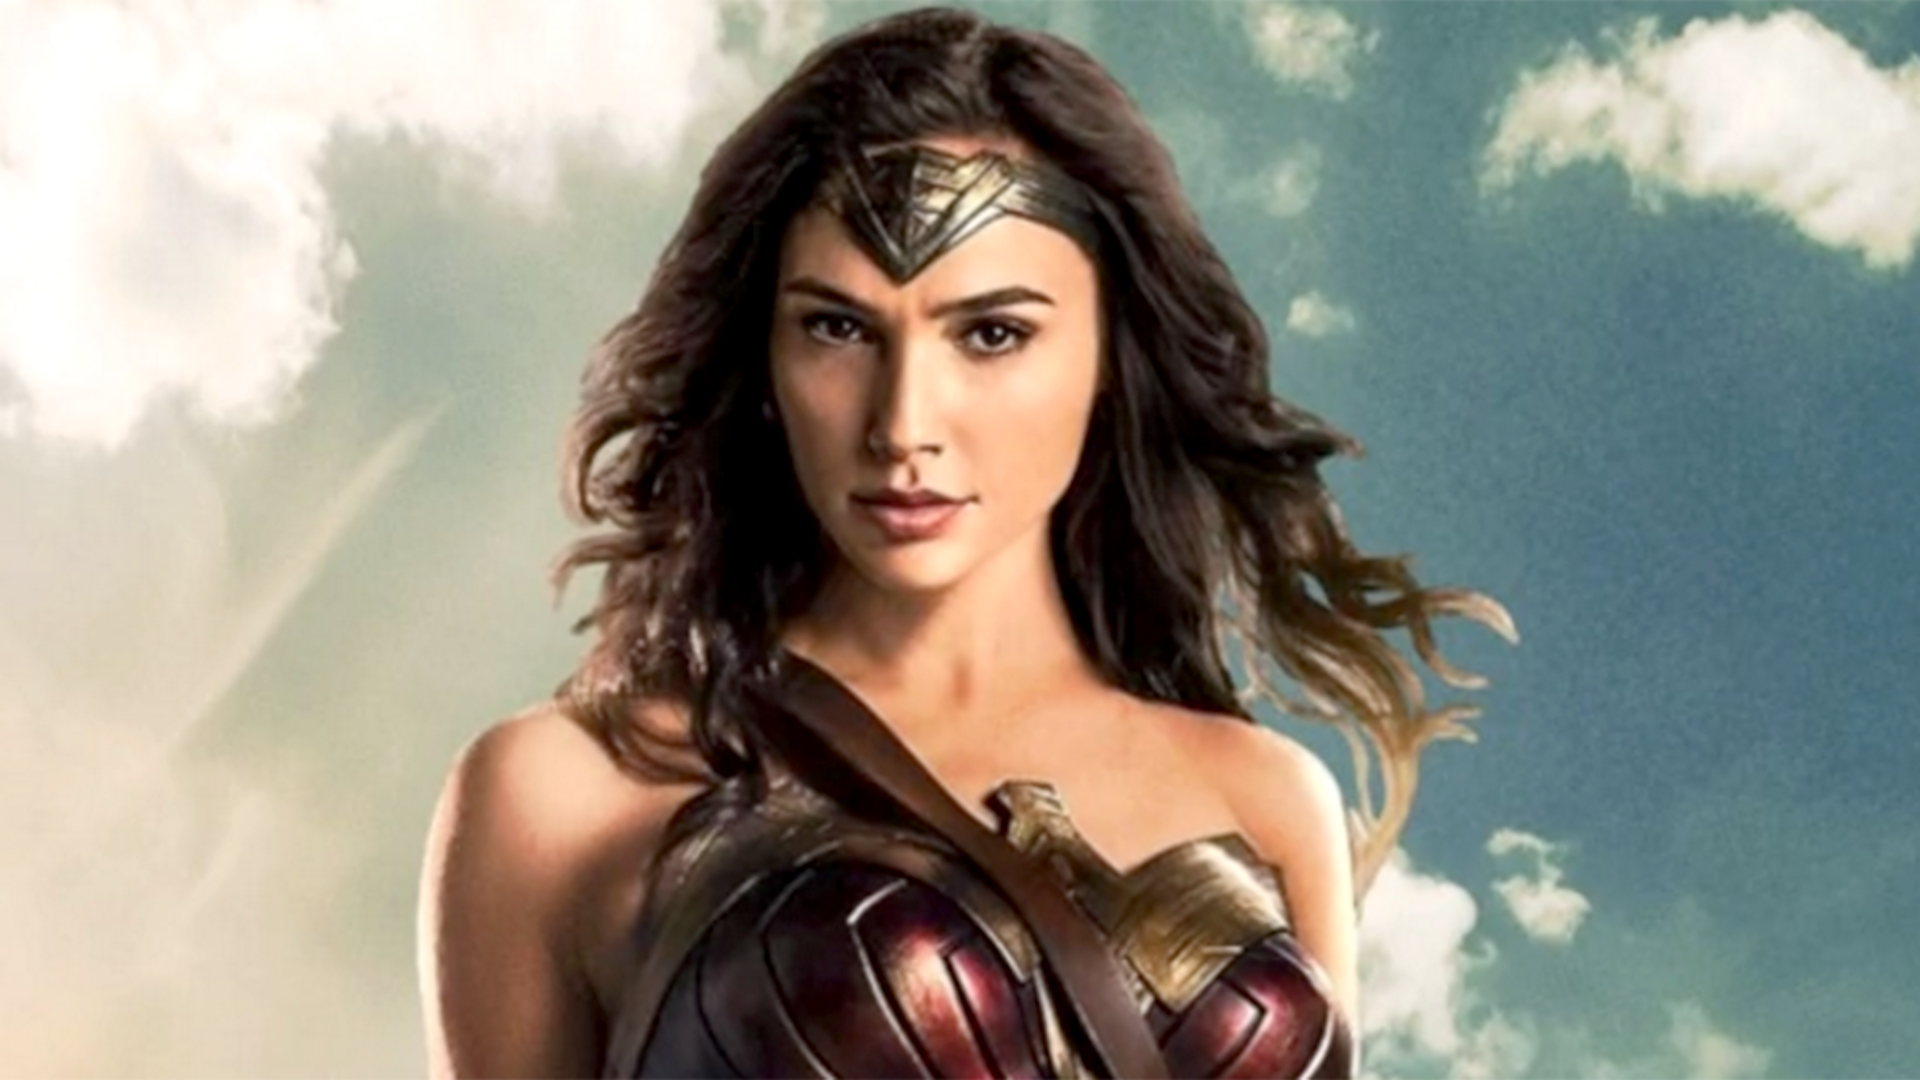 e768c903587 Gal Gadot opens up about playing Wonder Woman while pregnant